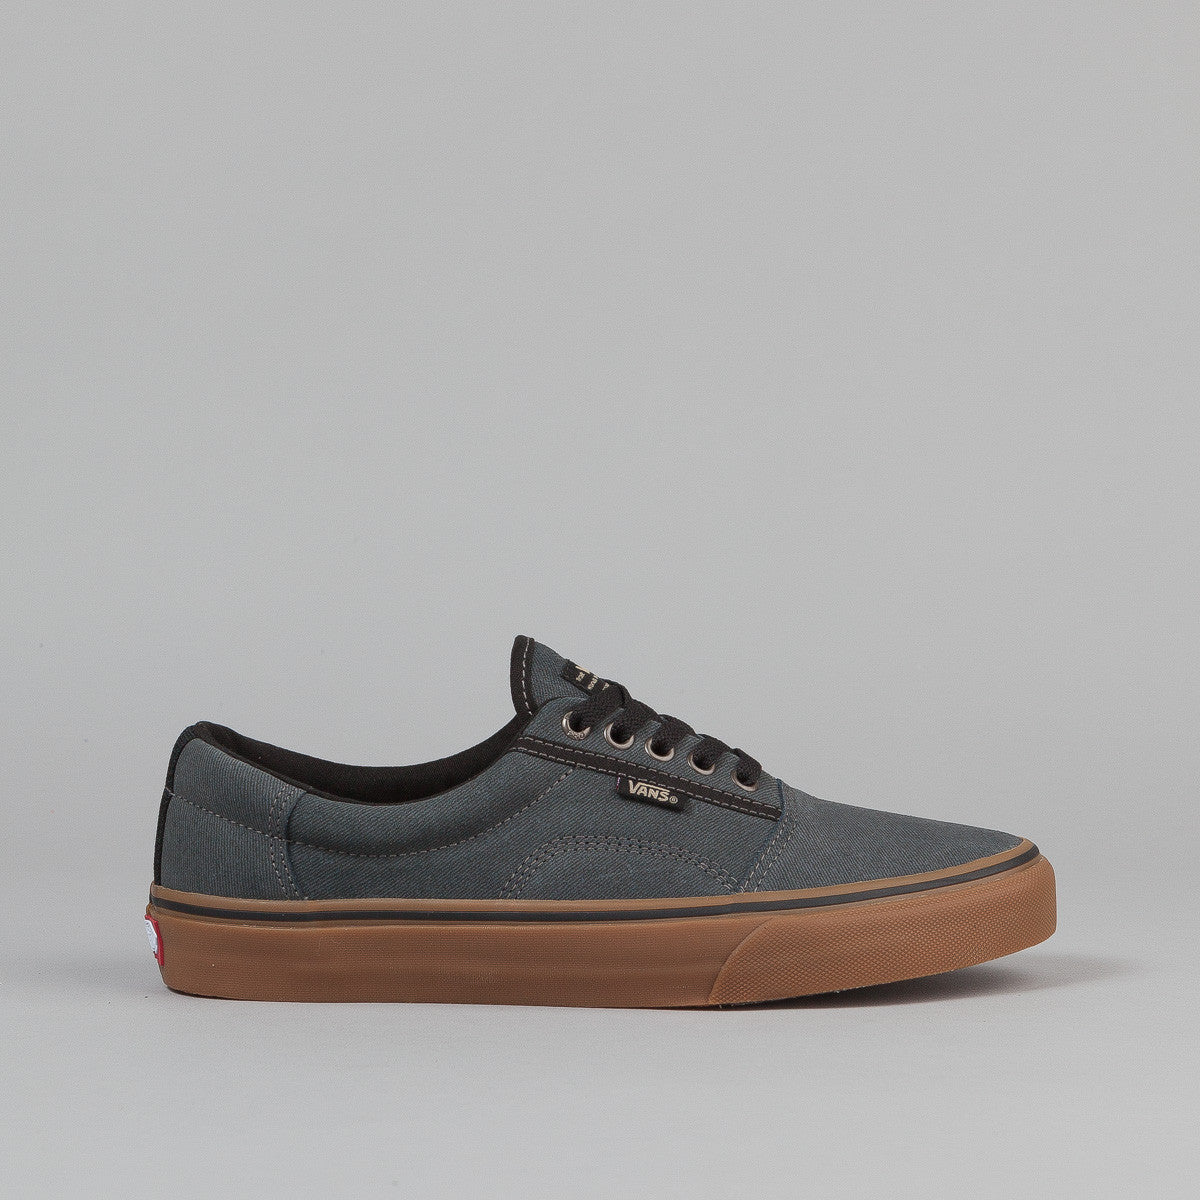 Vans Rowley Shoes - Black / Gum